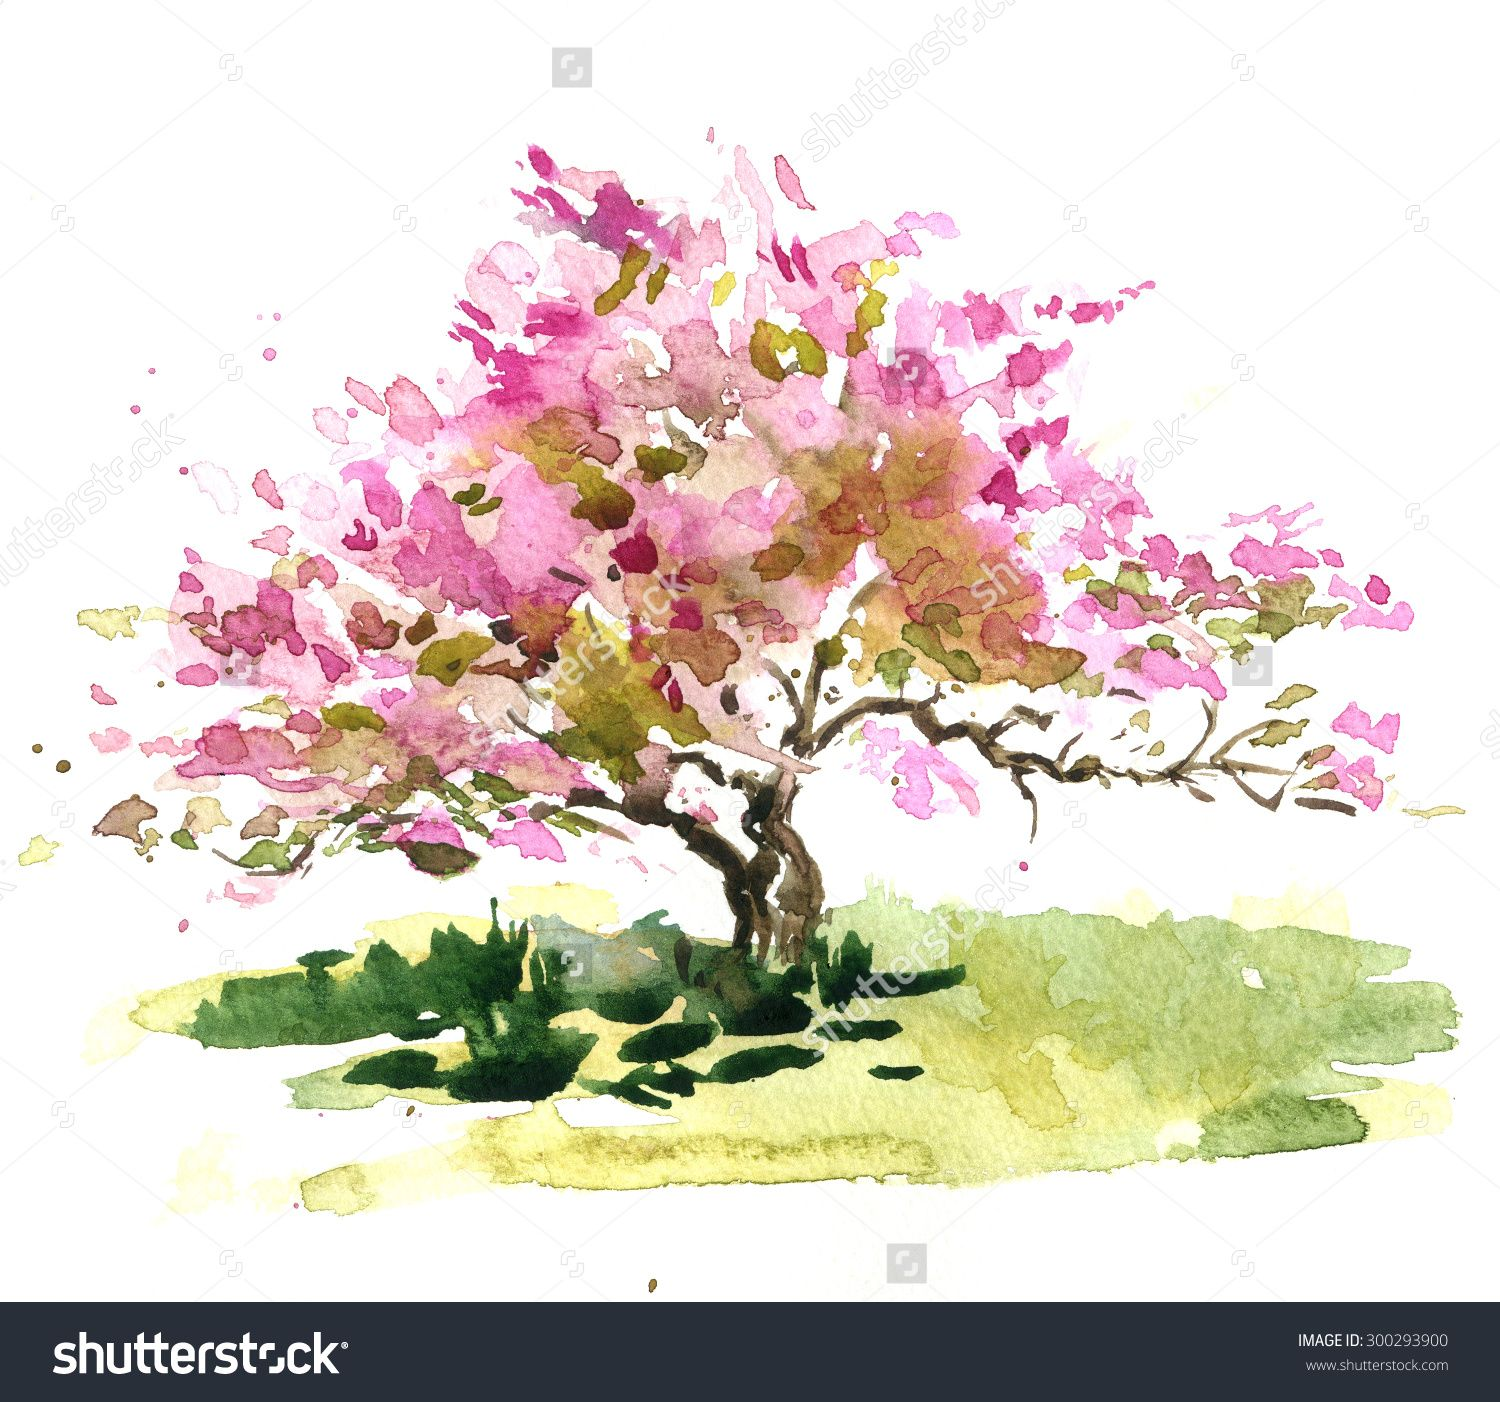 Captivating Image Result For How To Watercolor A Blooming Tree. Japanese Garden Cherry  Blossom Paintings